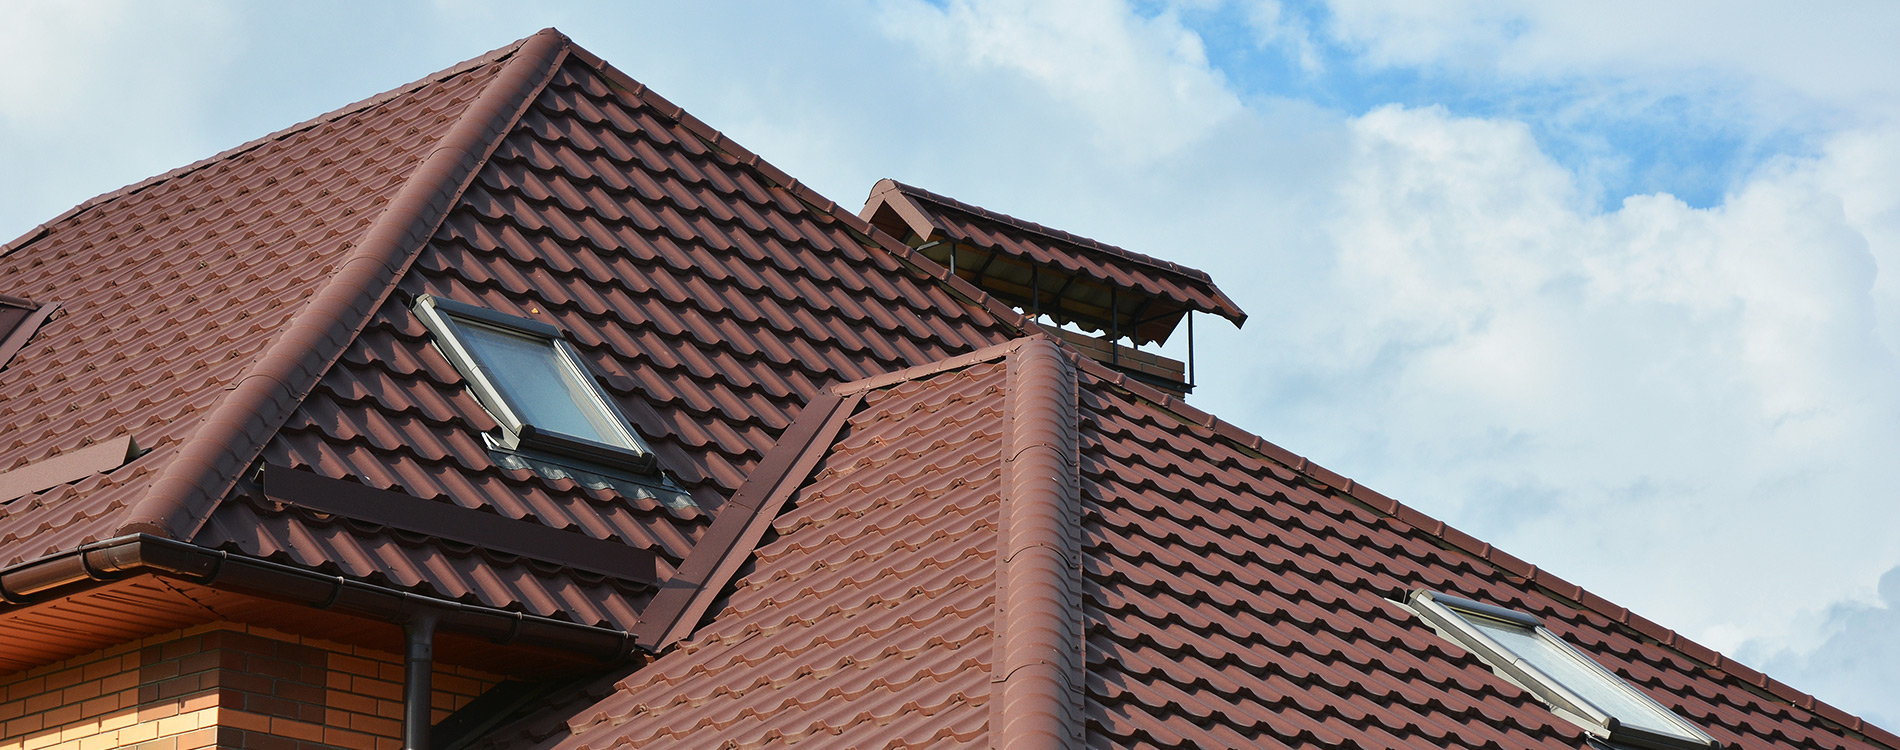 Roofing Supply Franchise for sale